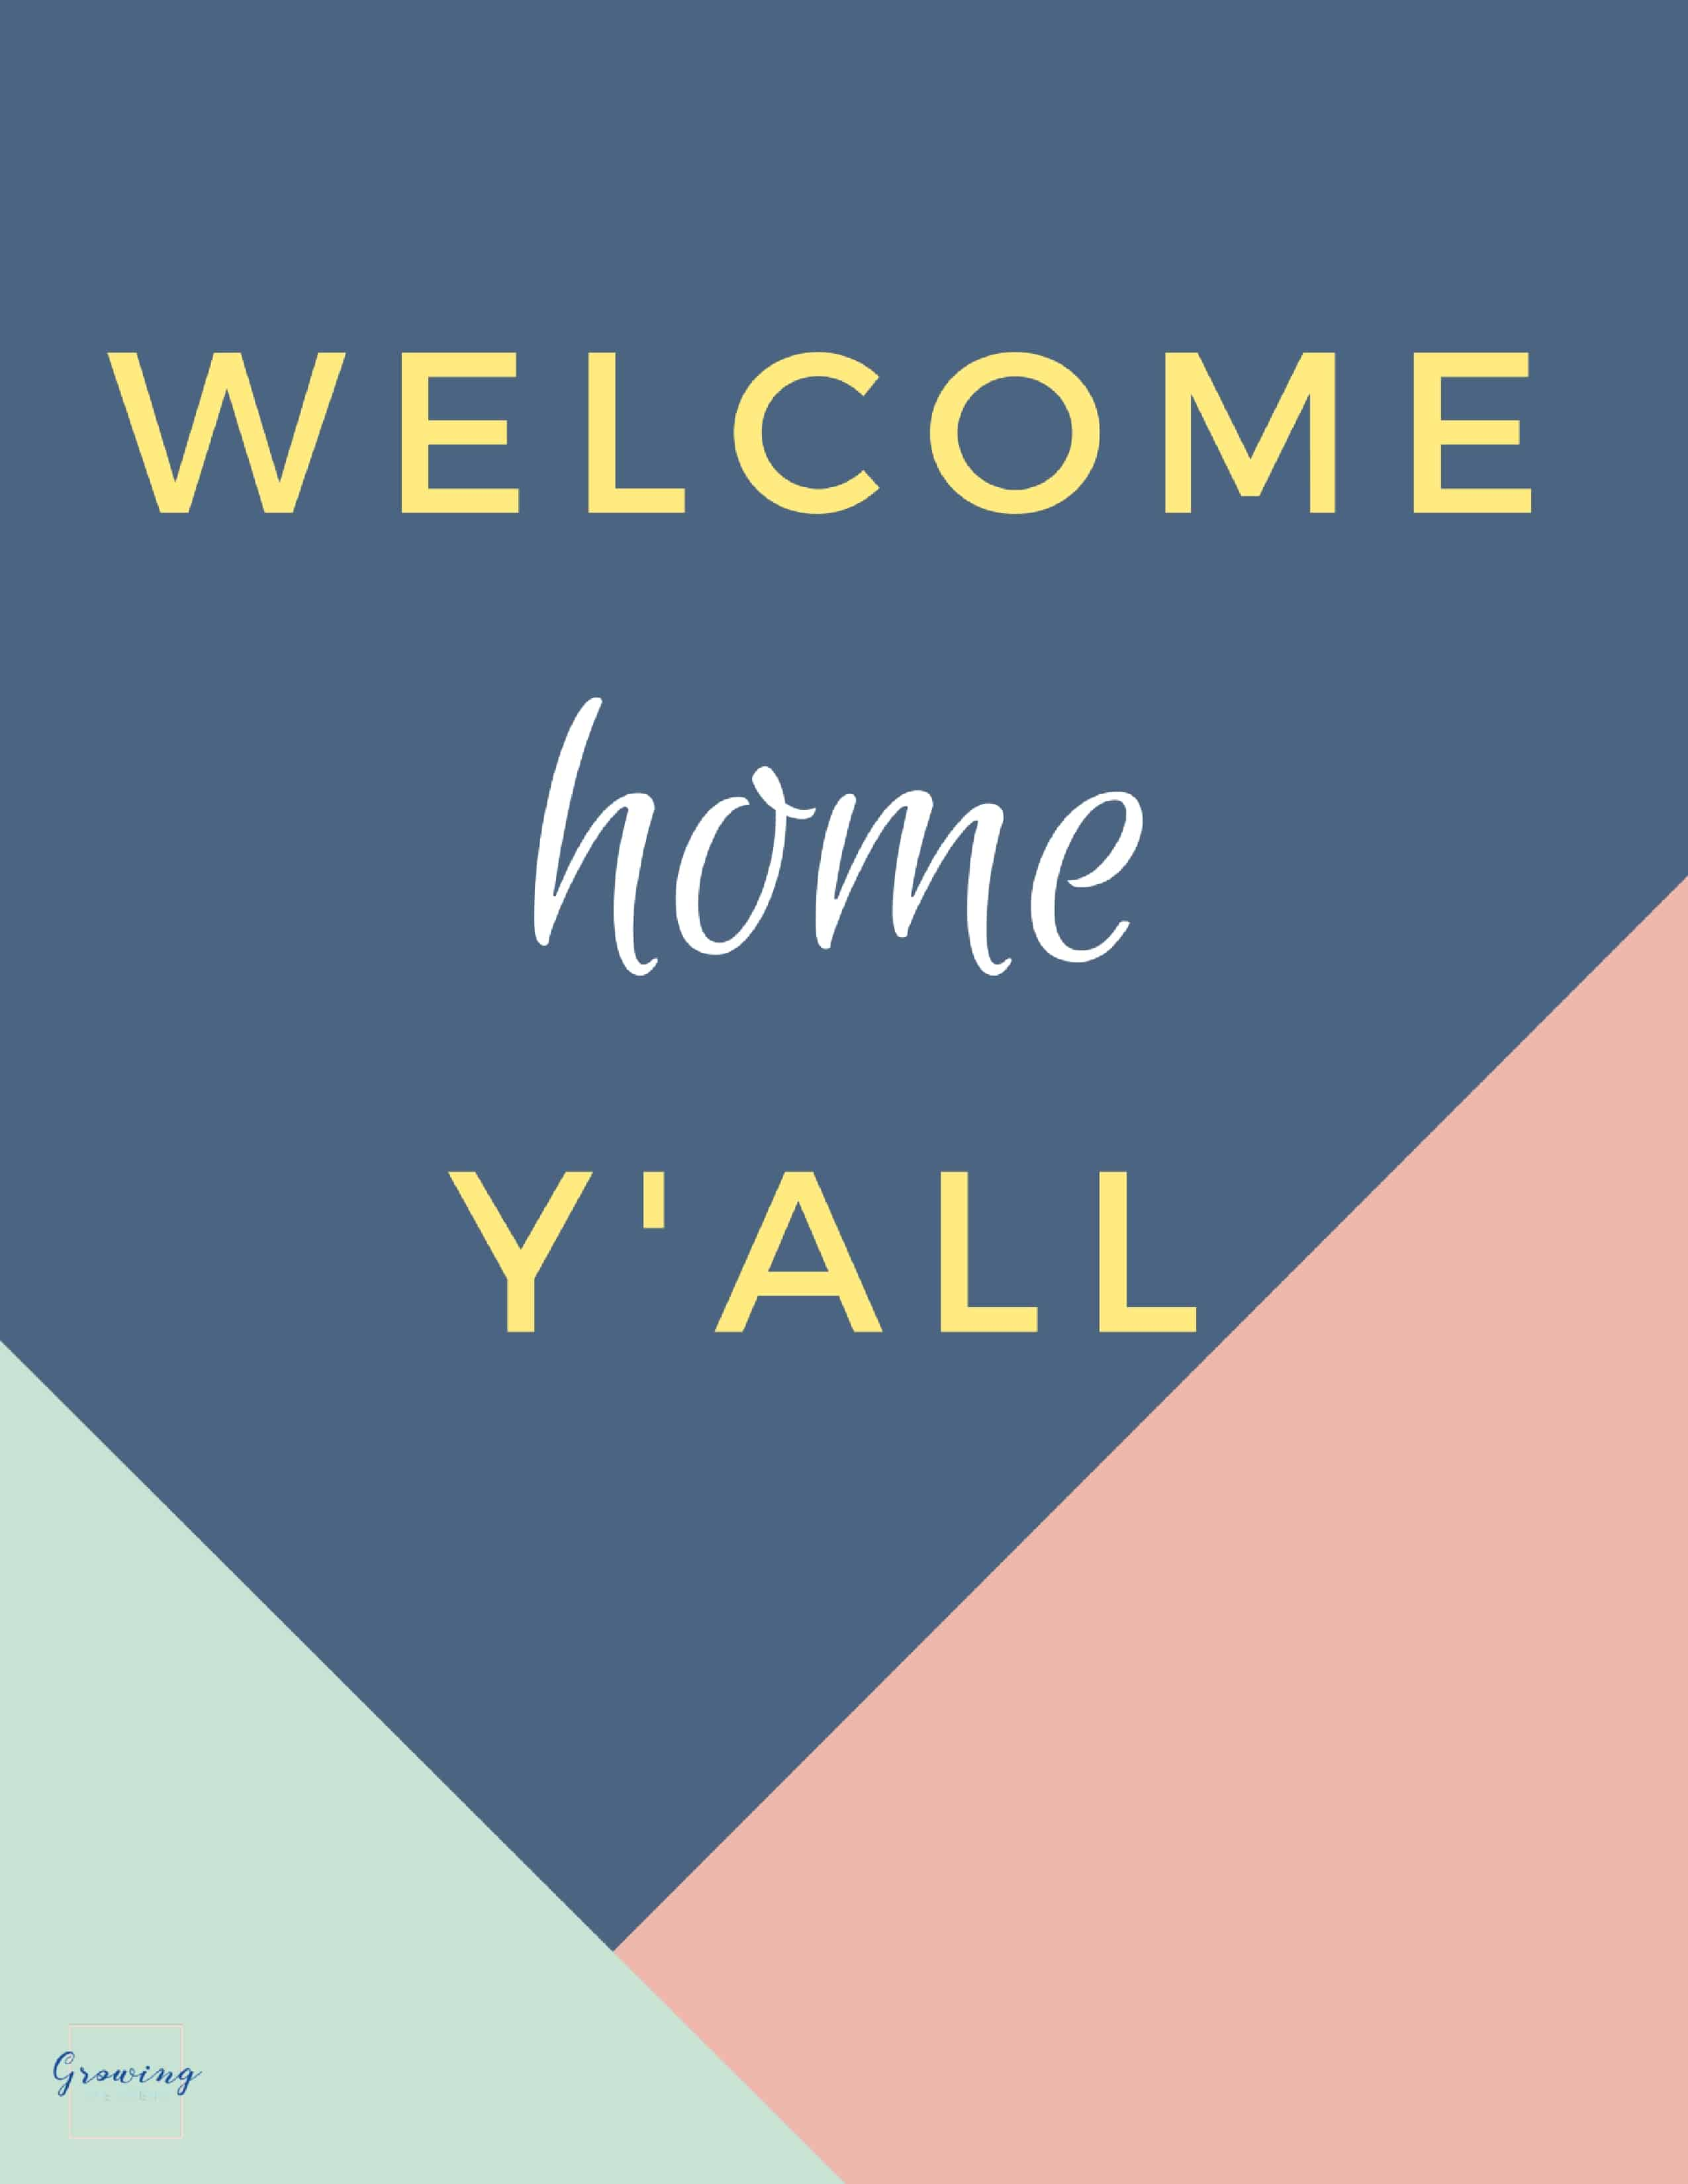 photograph relating to Welcome Home Printable identify Welcome House Yall Printable Obtain Rising The Givens